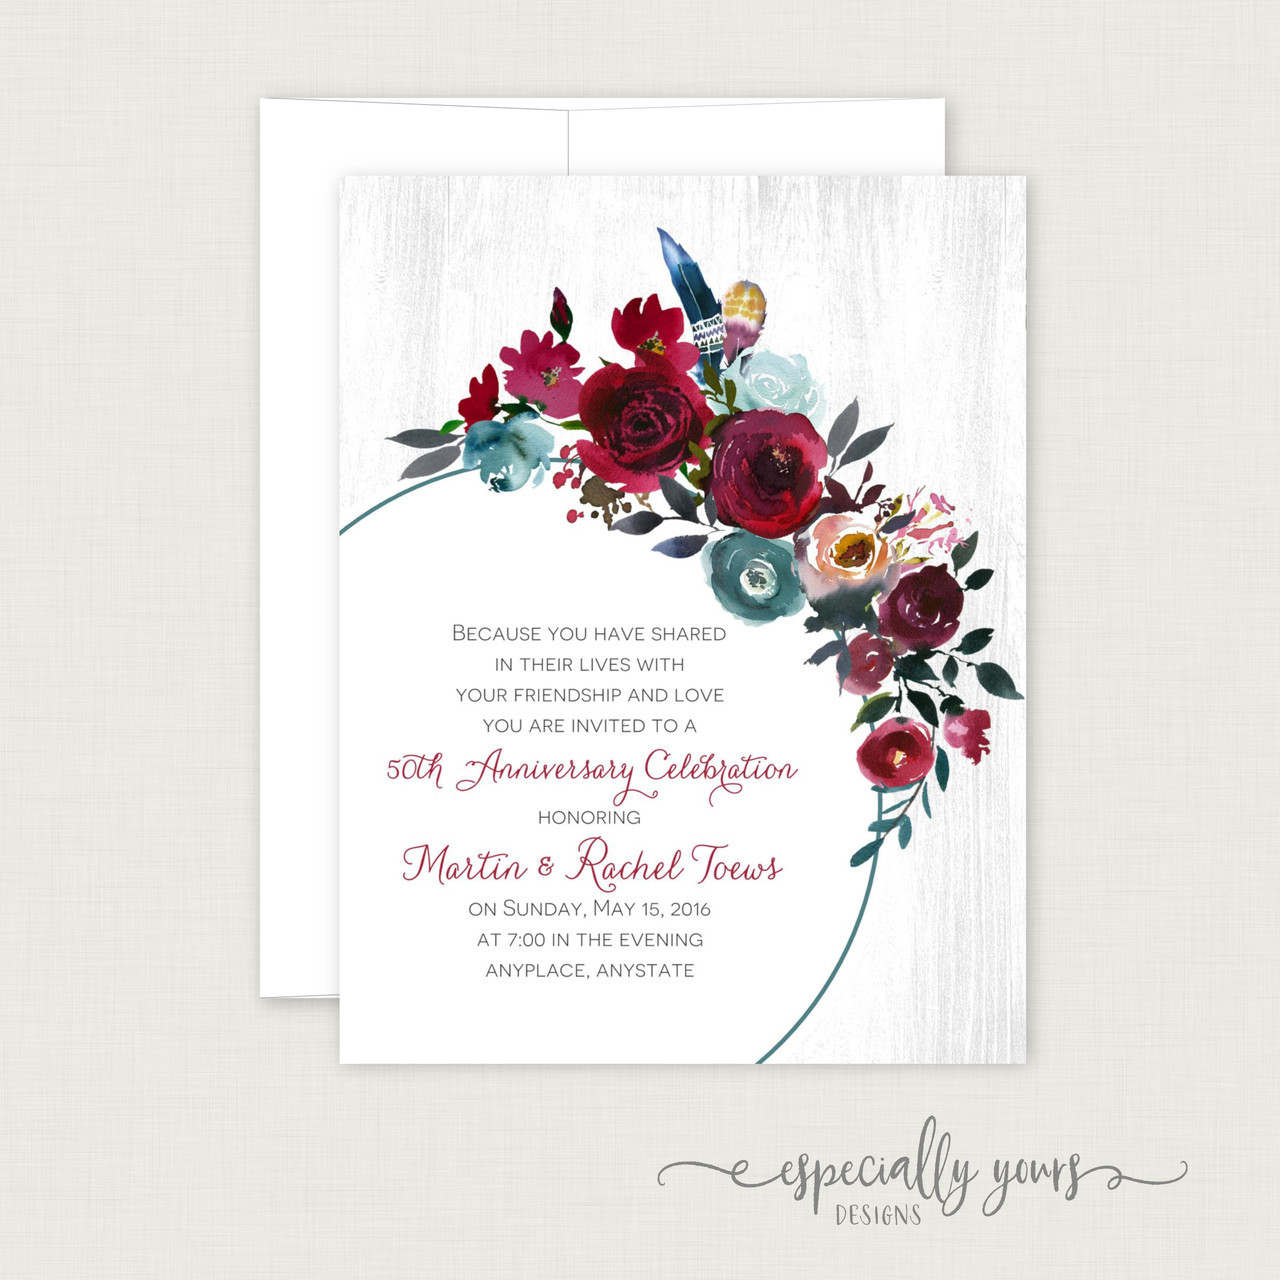 Burgundy Blue Floral Wedding Anniversary Celebration Invitations